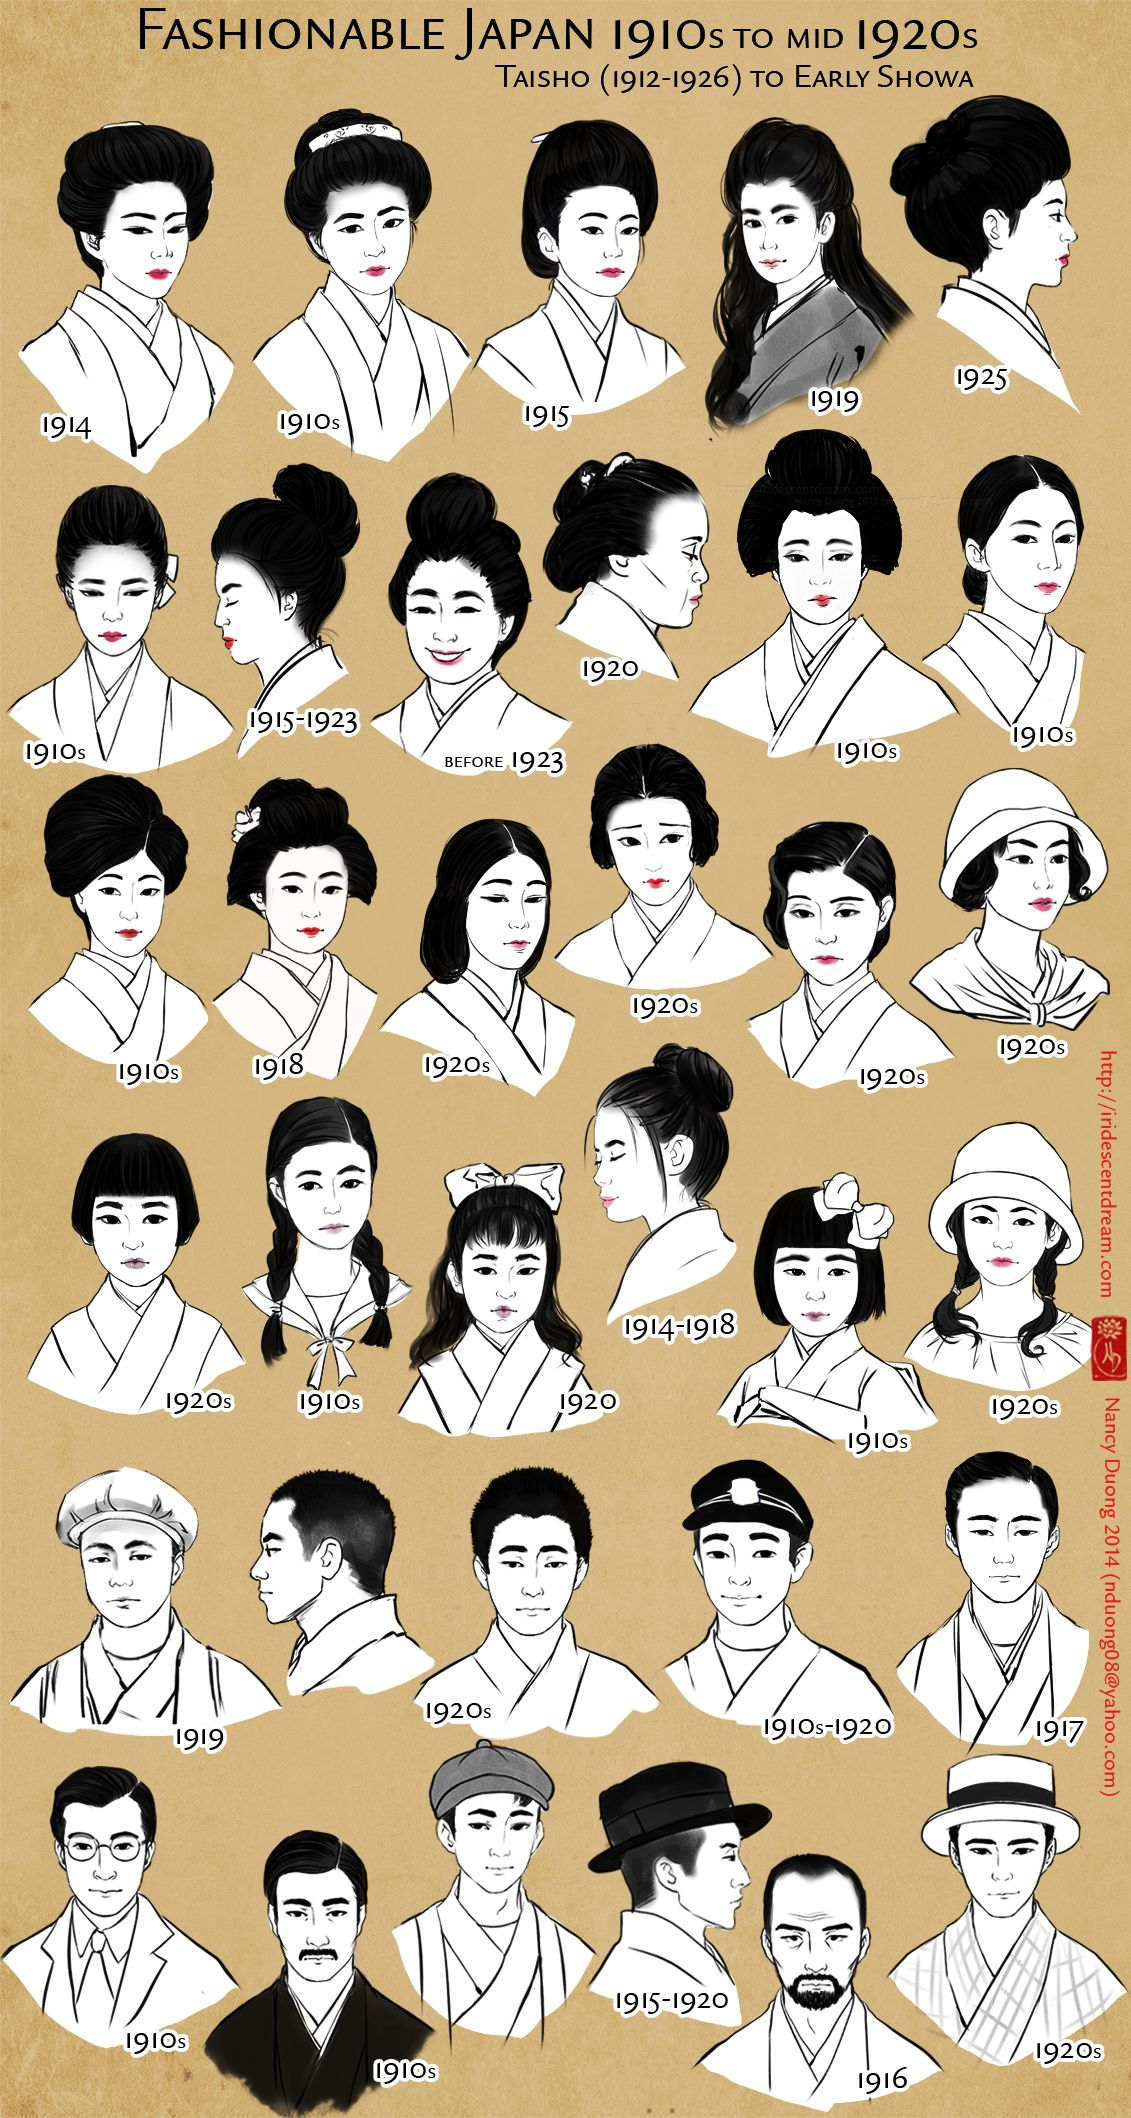 Fashionable Japan: 1910s-1920s by lilsuika on deviantART